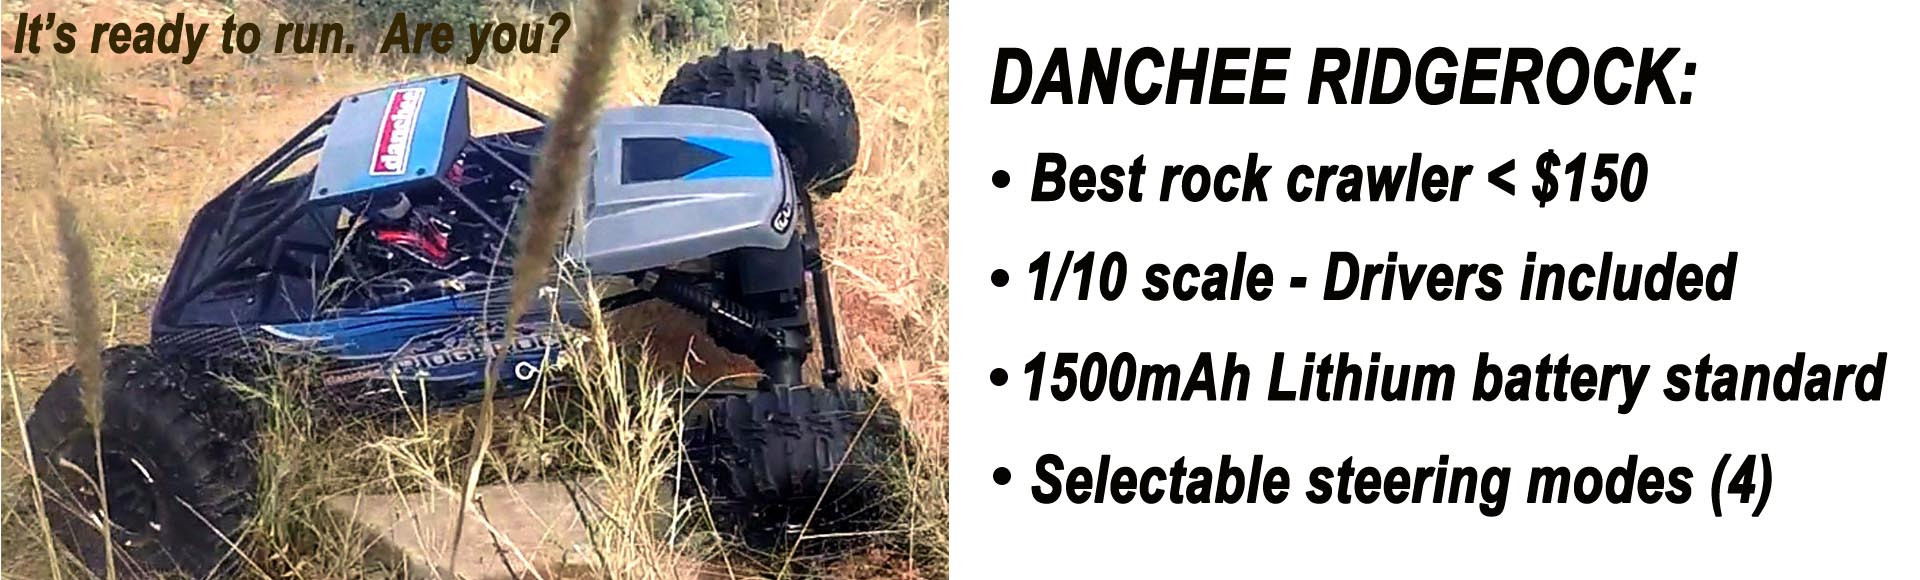 Danchee Ridgerock 1/10 Scale Crawler